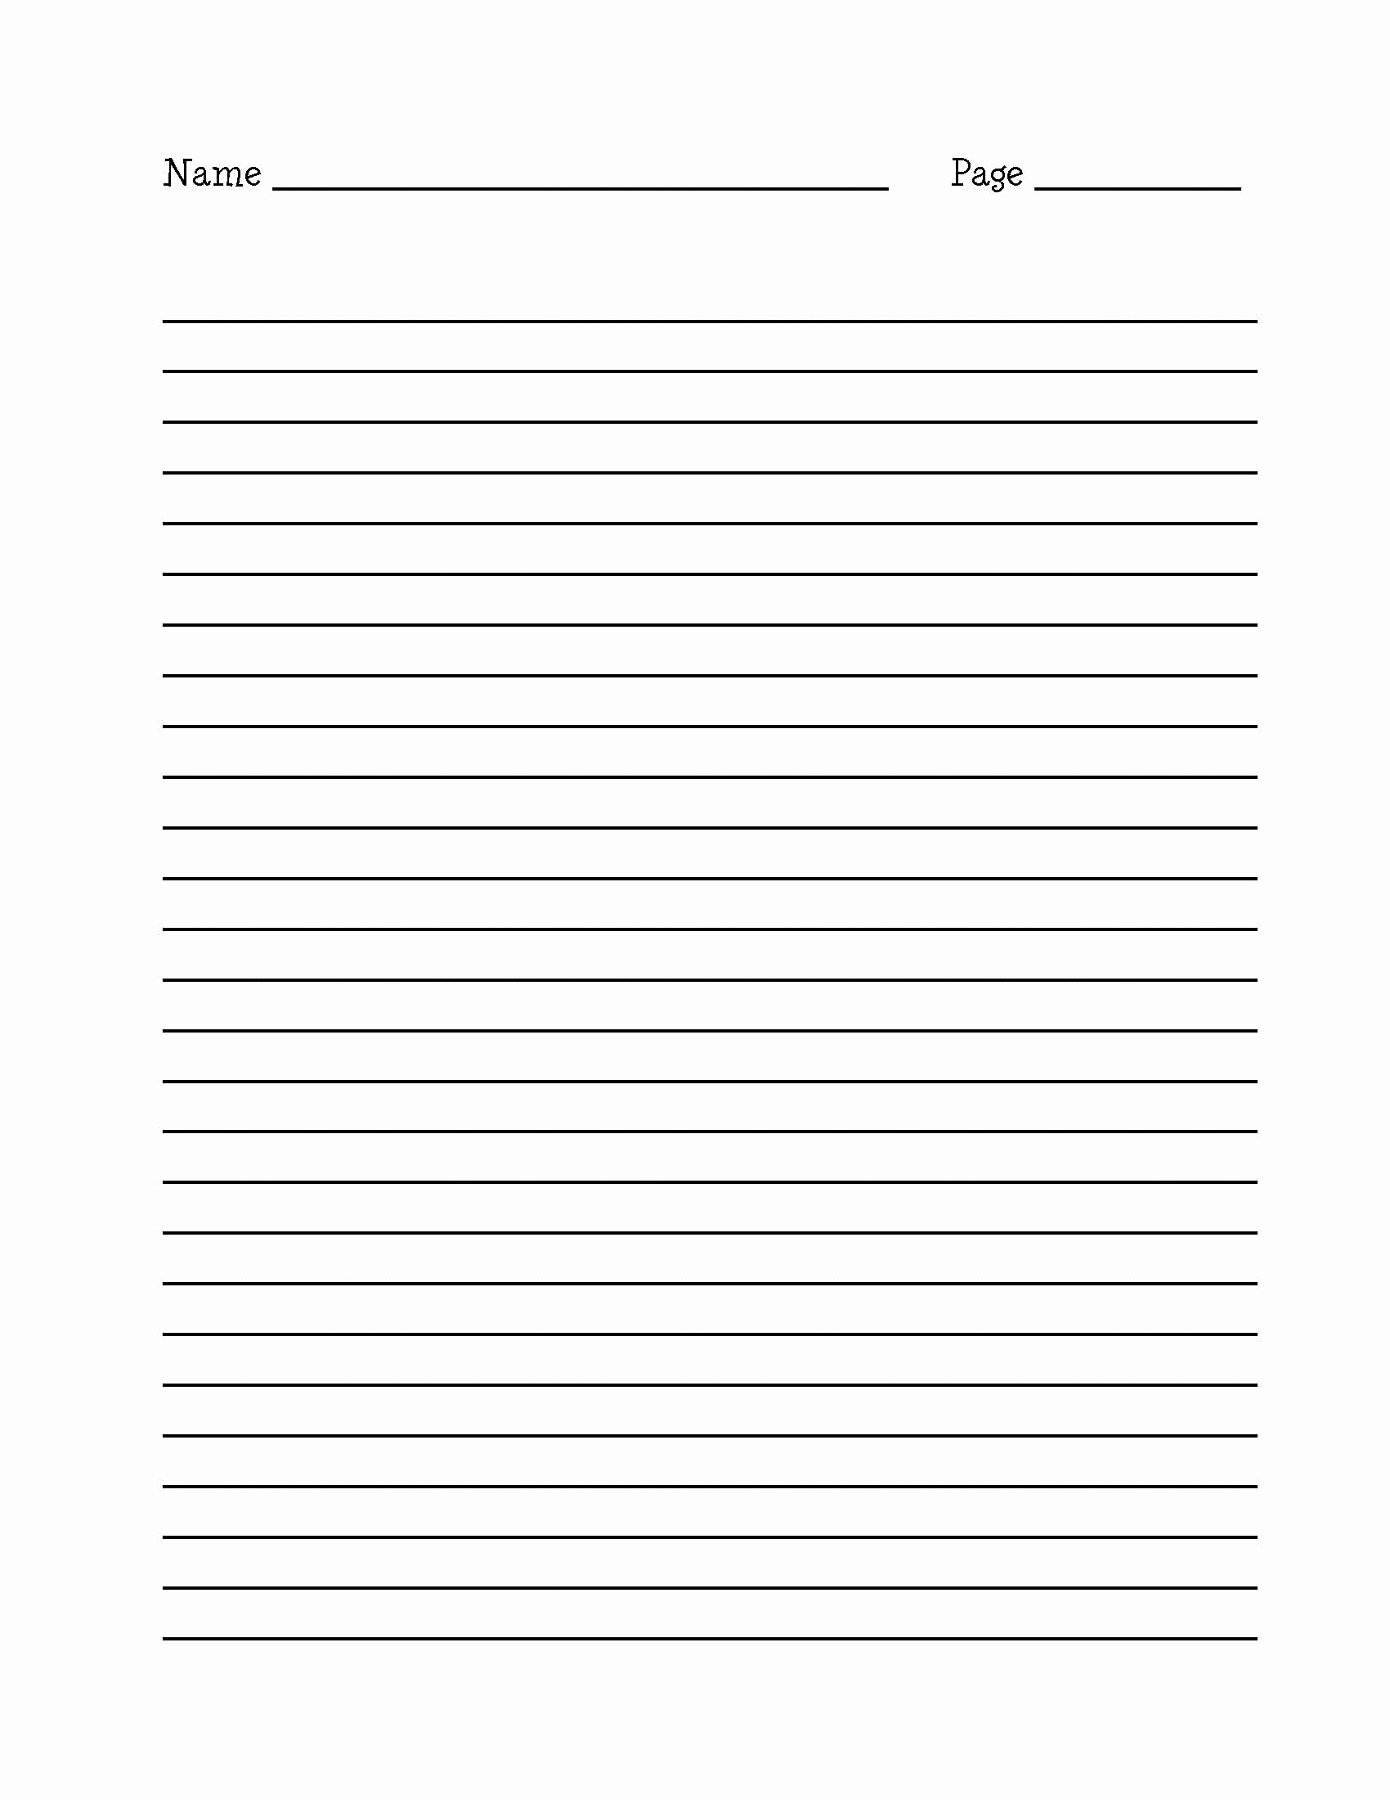 Picture Of Lined Paper New Lined Paper for Writing Activity Shelter